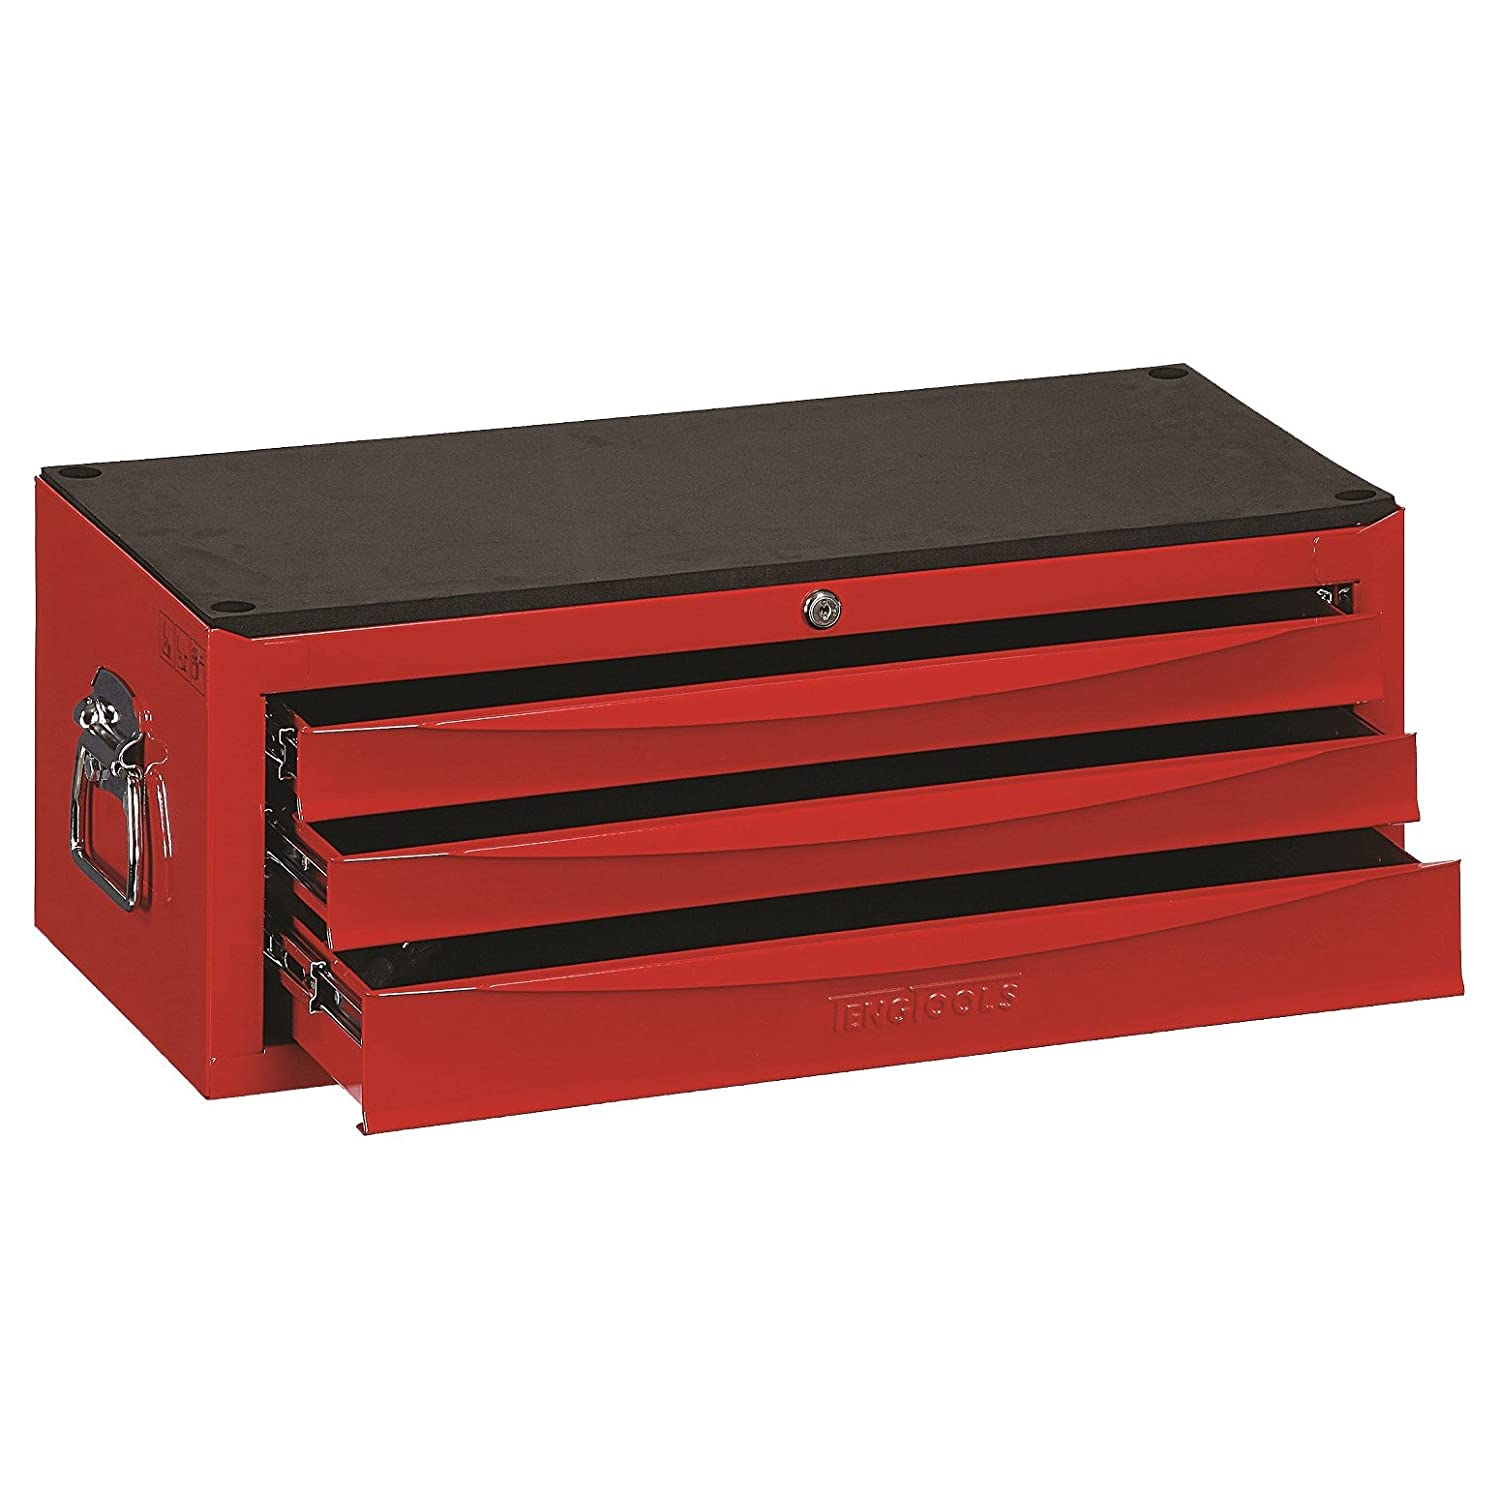 TENGTOOLS 16702100 Tengtools Model TC803SV Medium Chest 660 mm x 307 mm x 251 mm